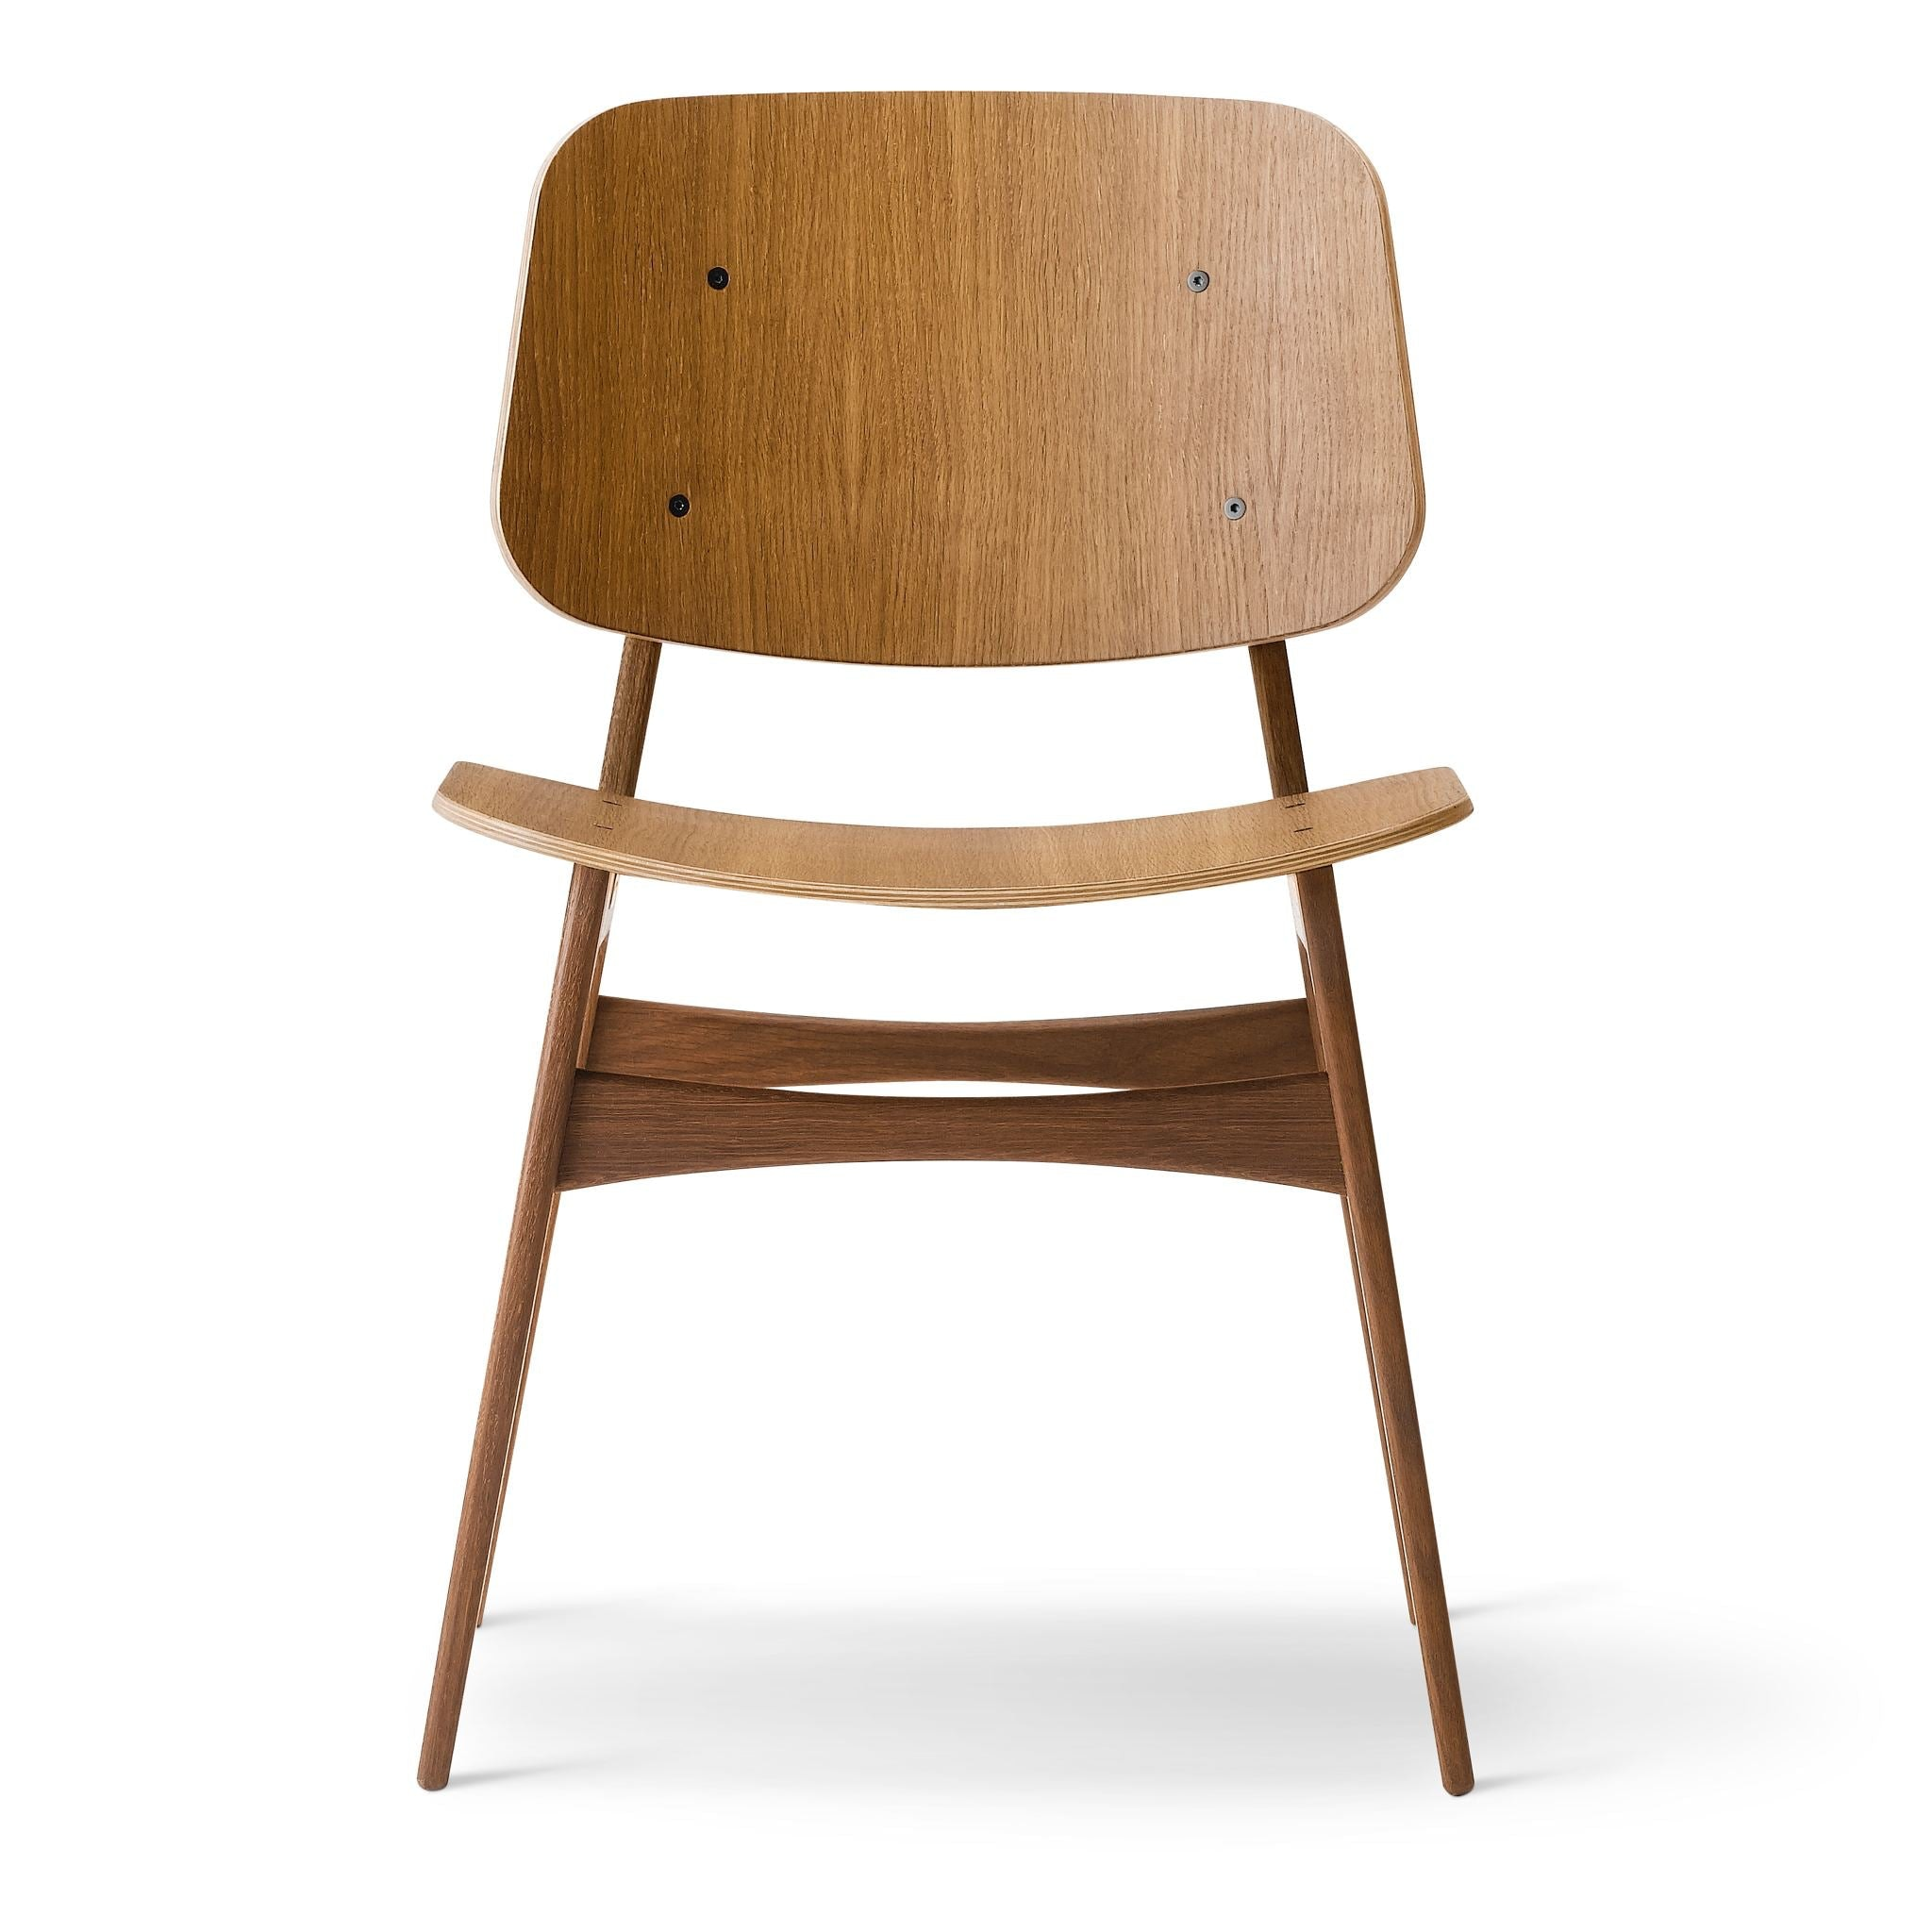 Søborg Chair Wooden Frame by Fredericia